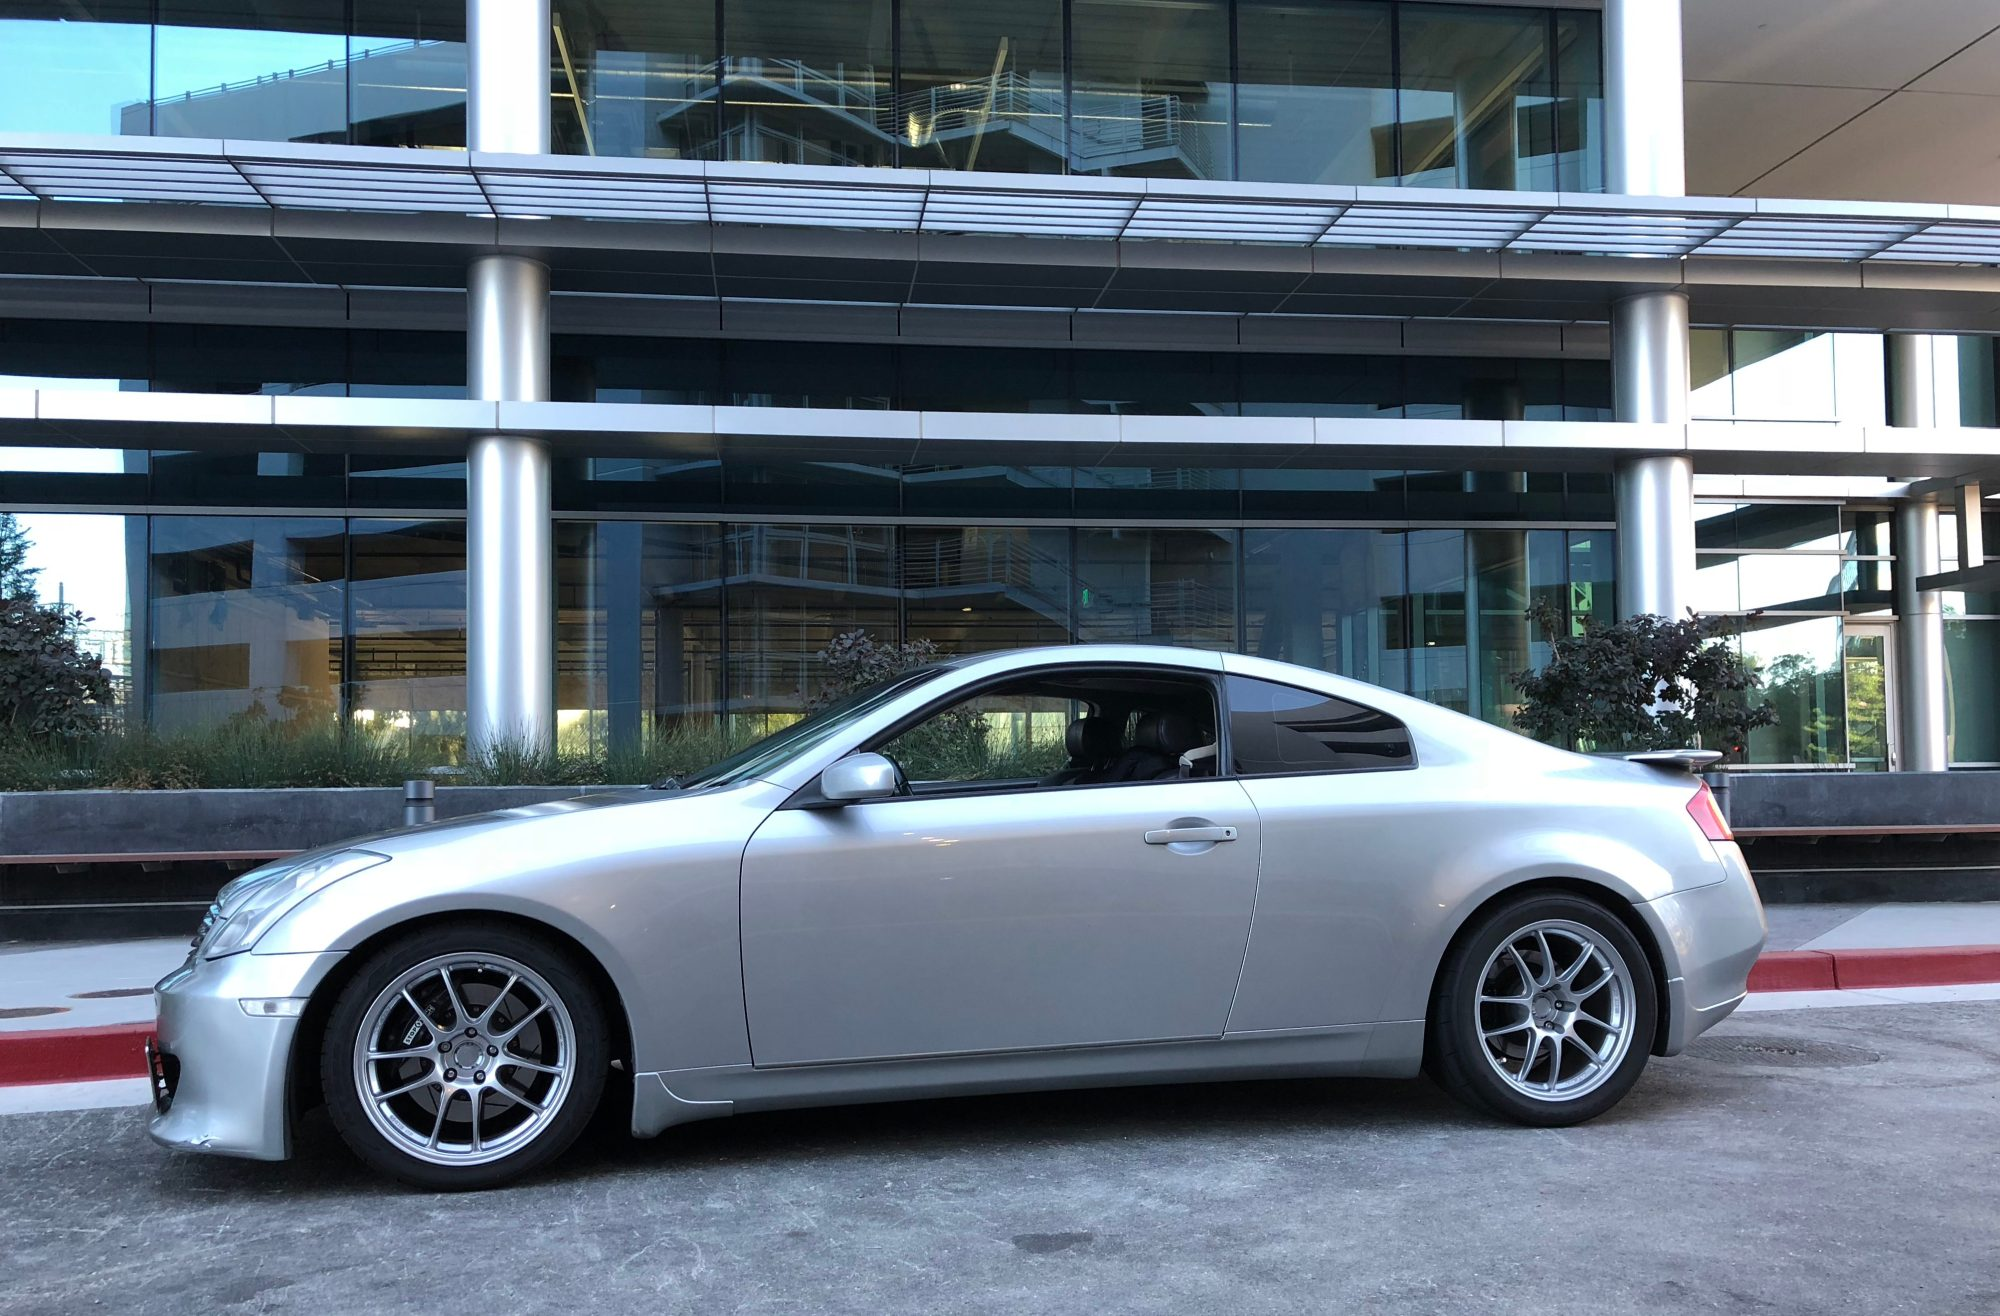 hight resolution of i bought this g35 bone stock from the original owner in 2012 with 99k miles on it it has been serviced and modified exclusively at z car garage since then